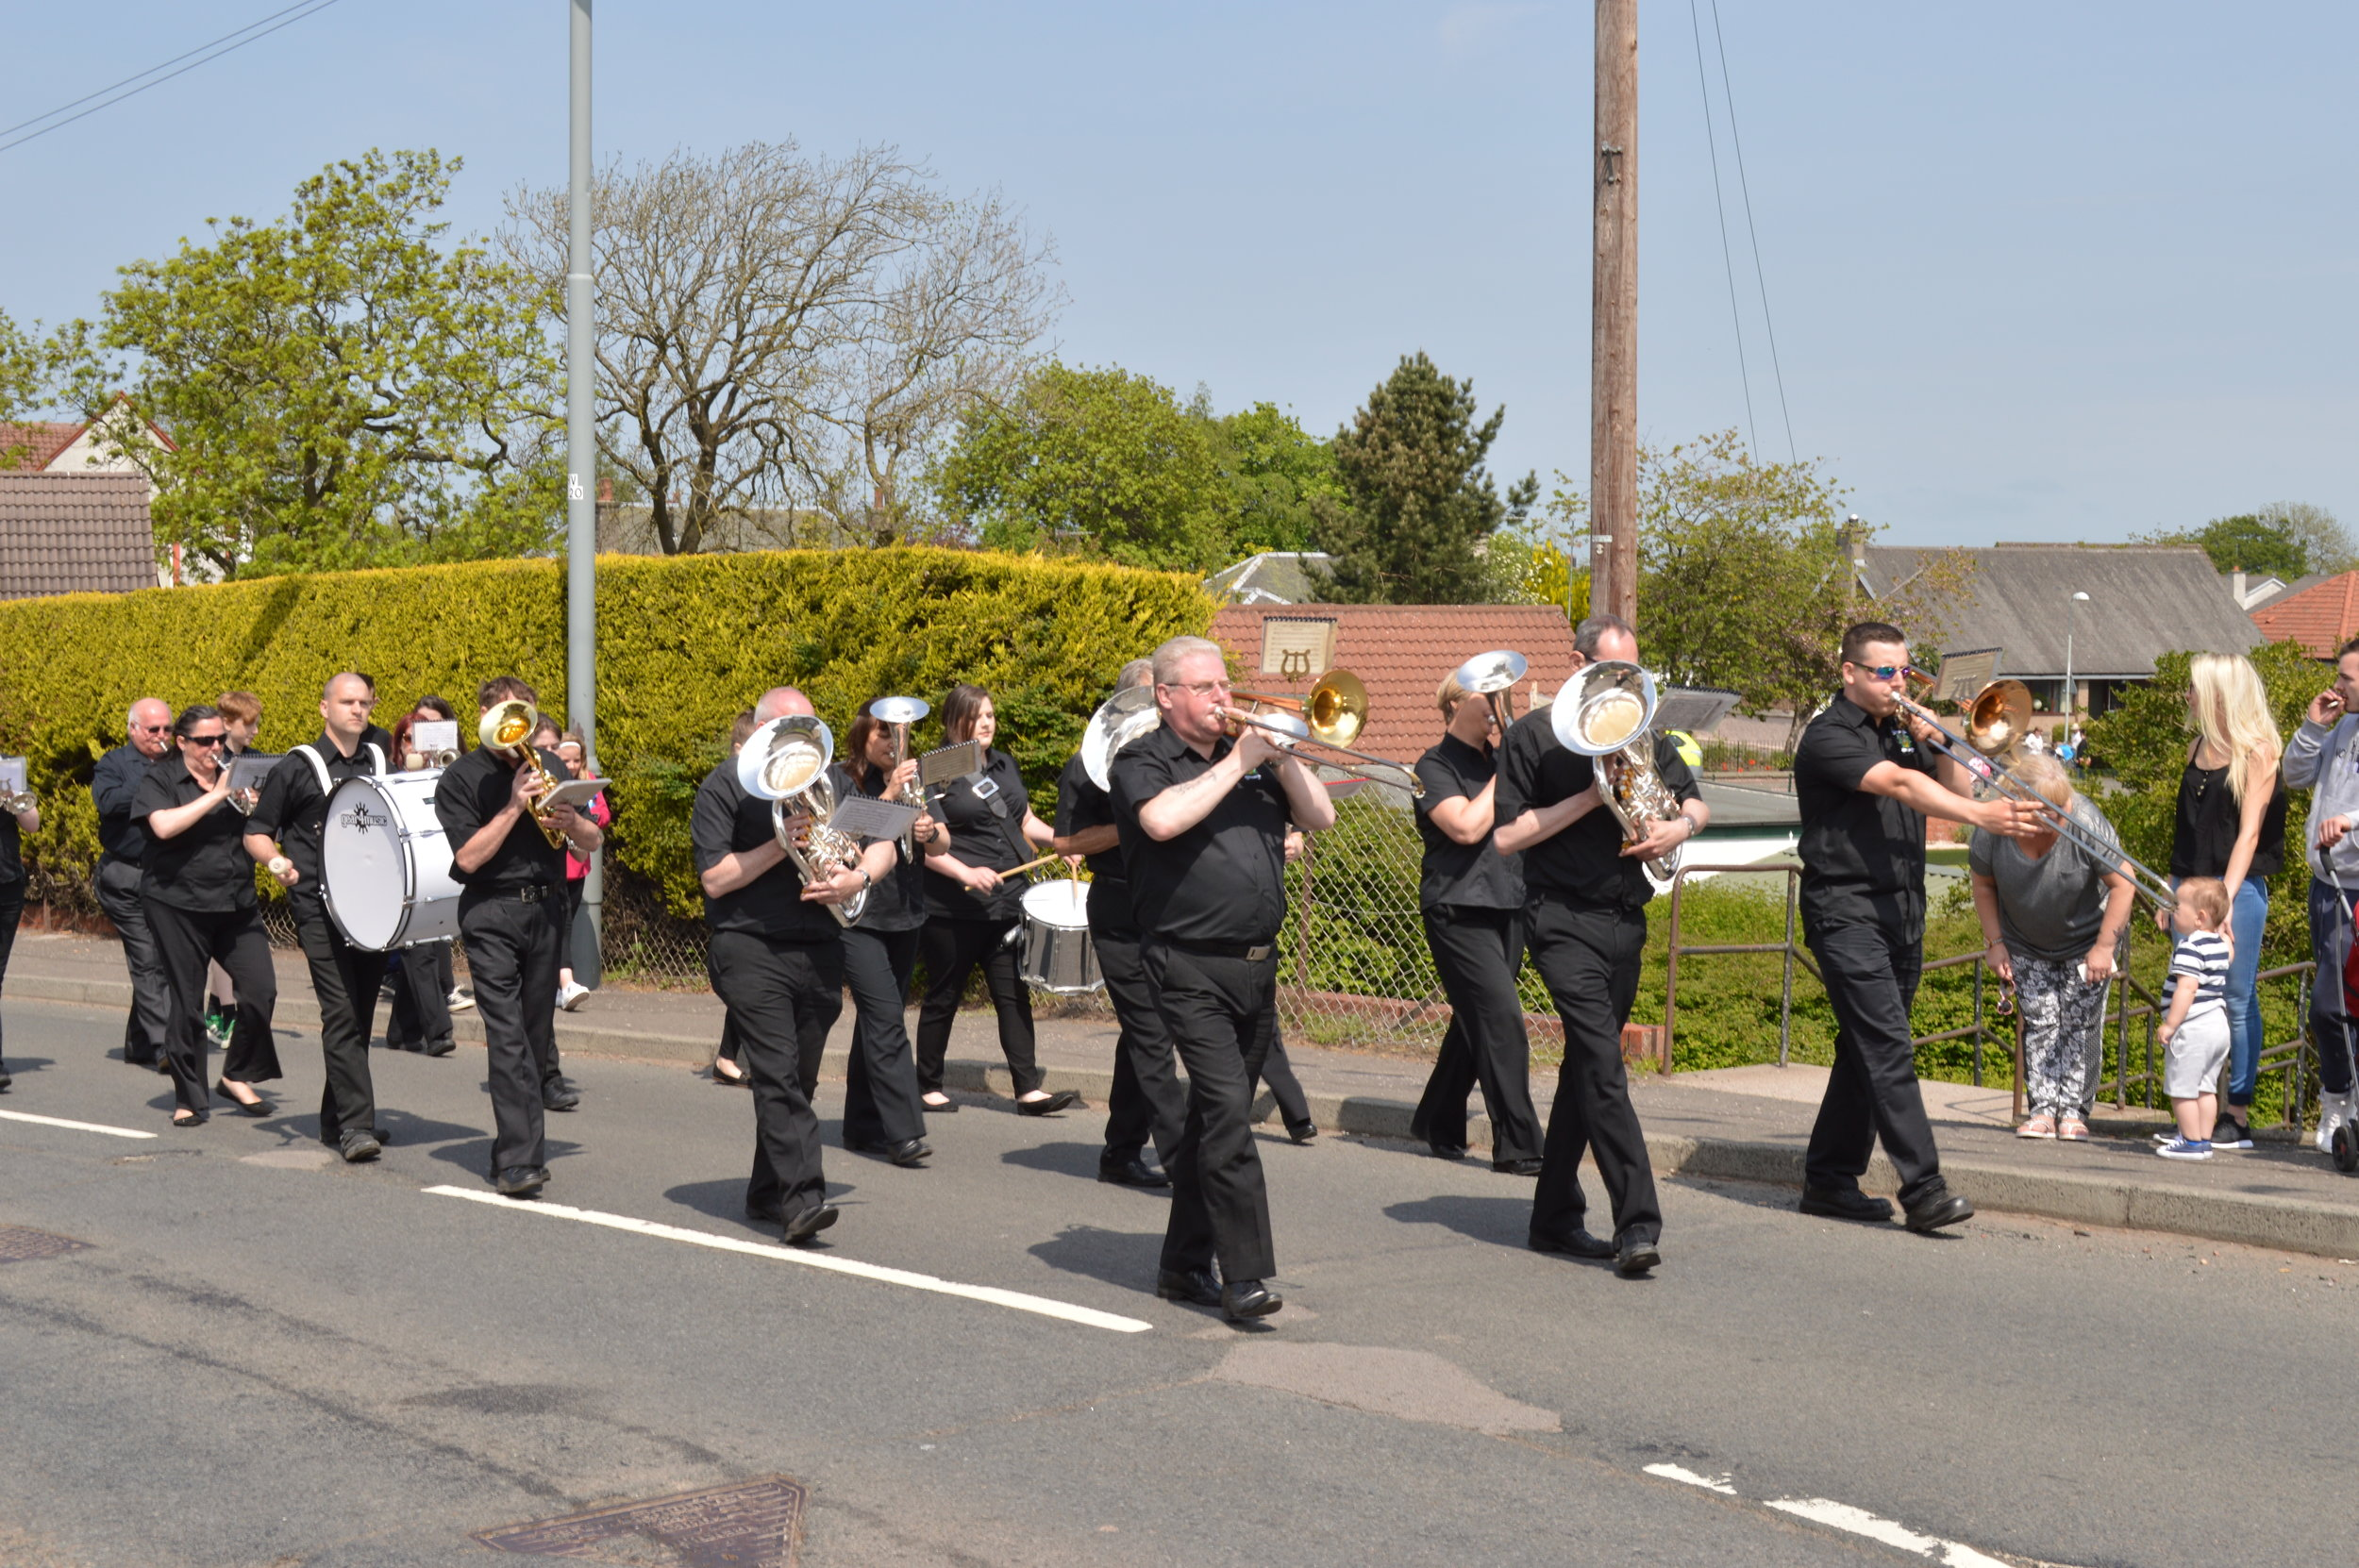 The Band in the parade at Parkhead Children's Gala Day marching to Hermand Park for the start of the races.